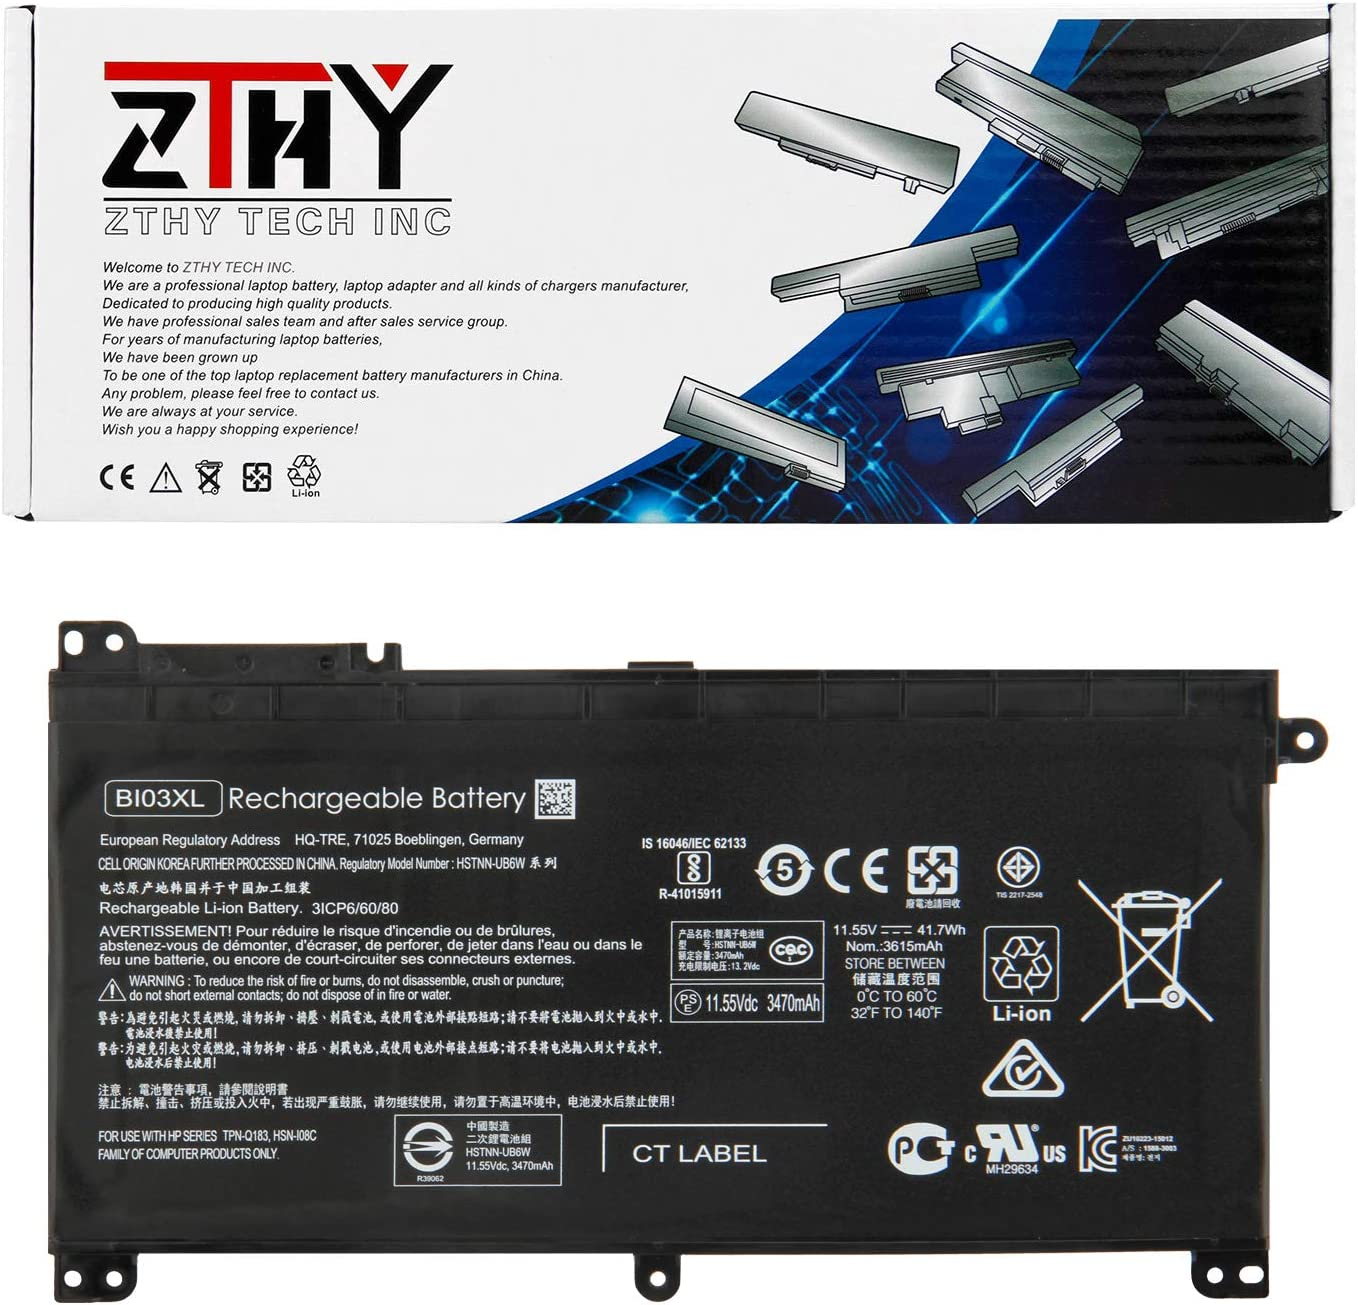 ZTHY BI03XL ON03XL Laptop Battery for HP Pavilion X360 13-U000 M3-U000 M3-U001DX U103DX U100TU U105DX U118TU Stream 14-AX000 14-ax010wm 14-ax020wm 14-ax030wm 843537-541 915230-541 41.7Wh